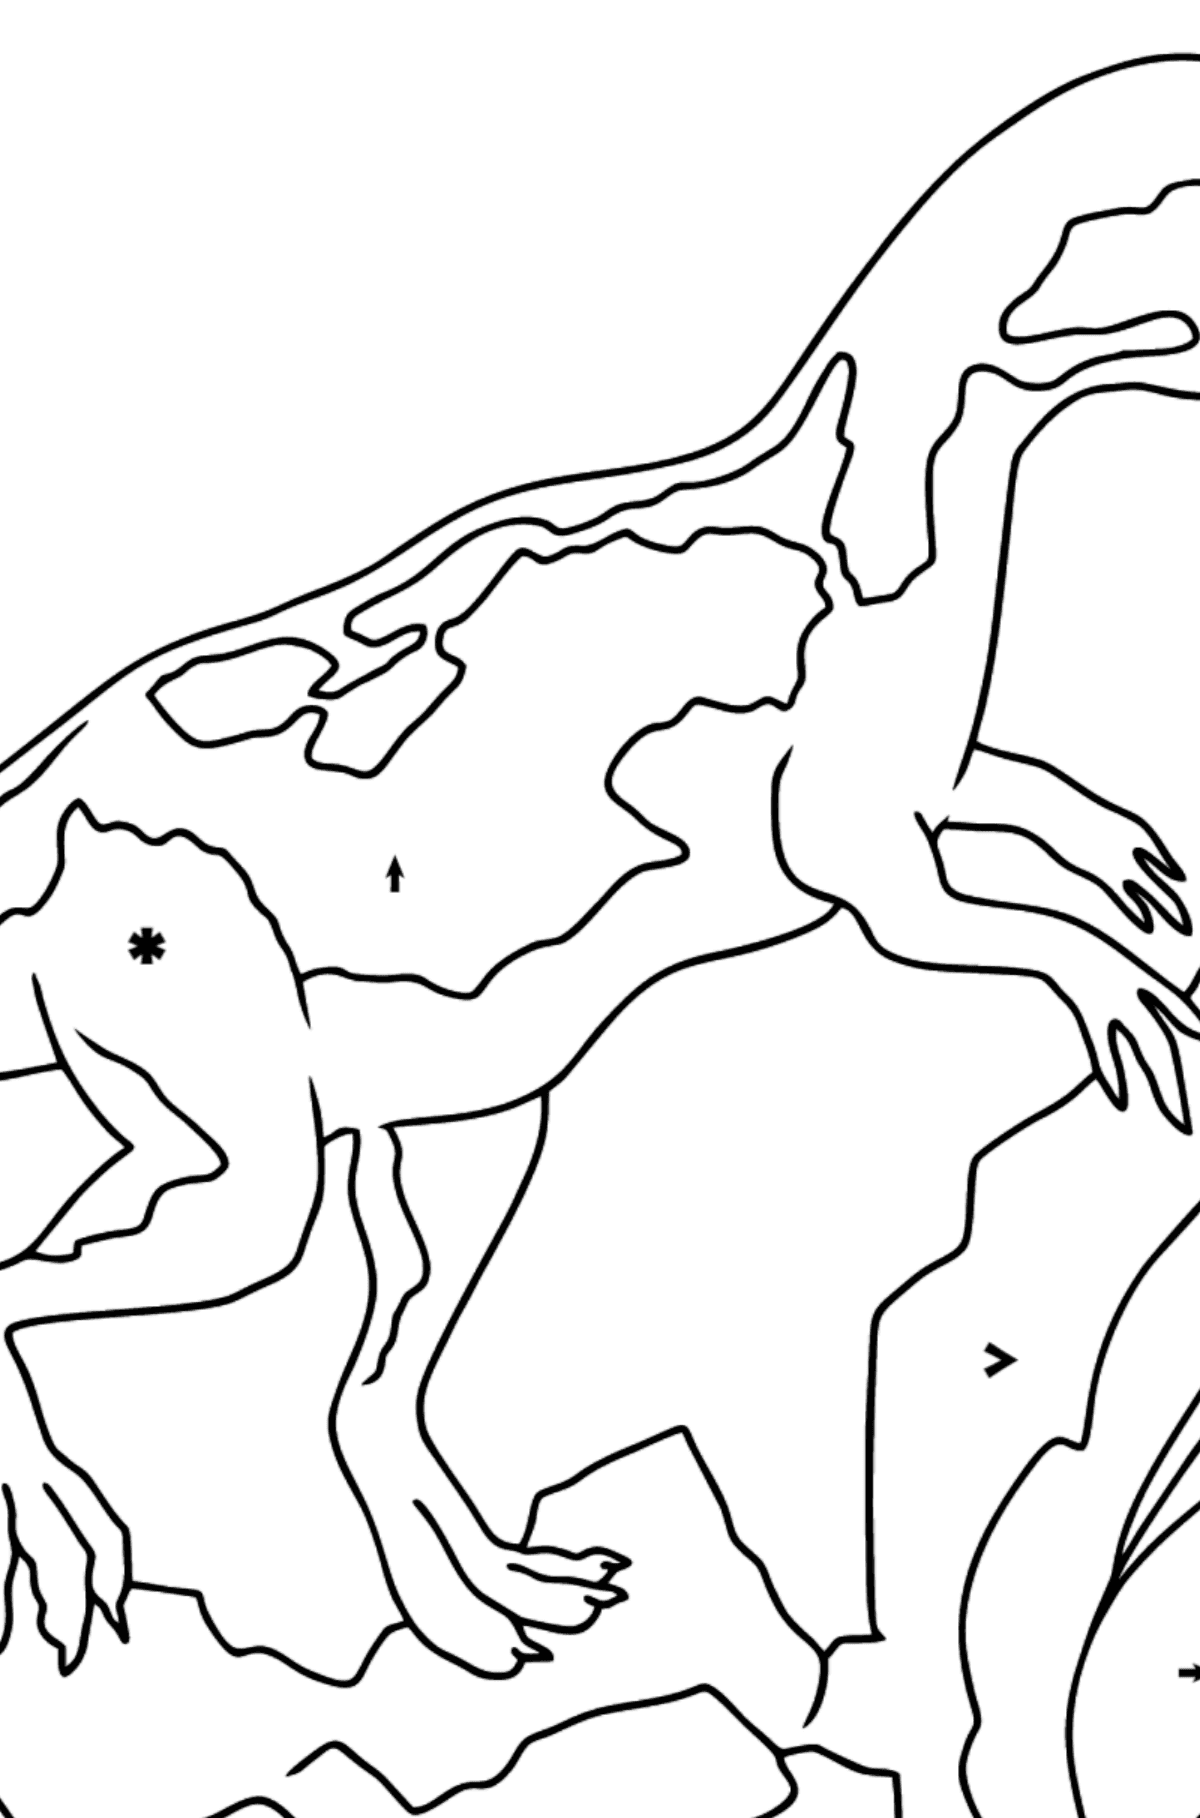 Coloring Page - A Dinosaur is Looking for Food - Coloring by Symbols for Kids